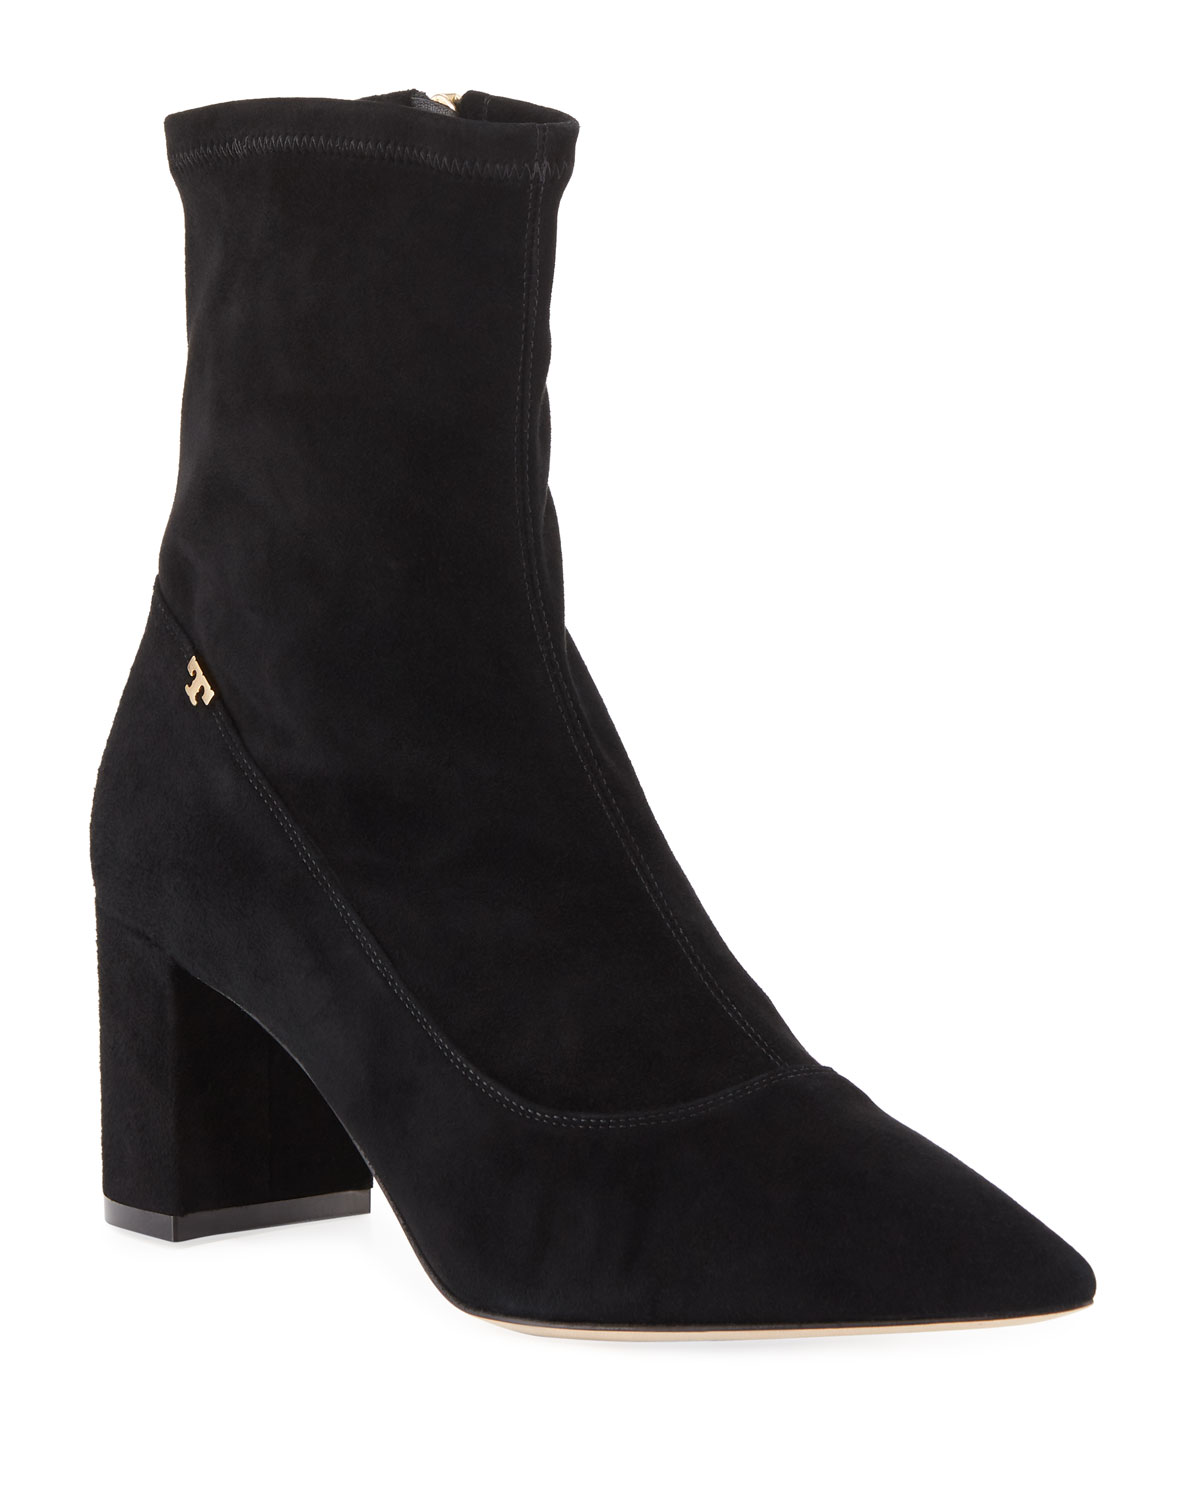 569db1ed05a3 Tory Burch Penelope Suede 65mm Booties